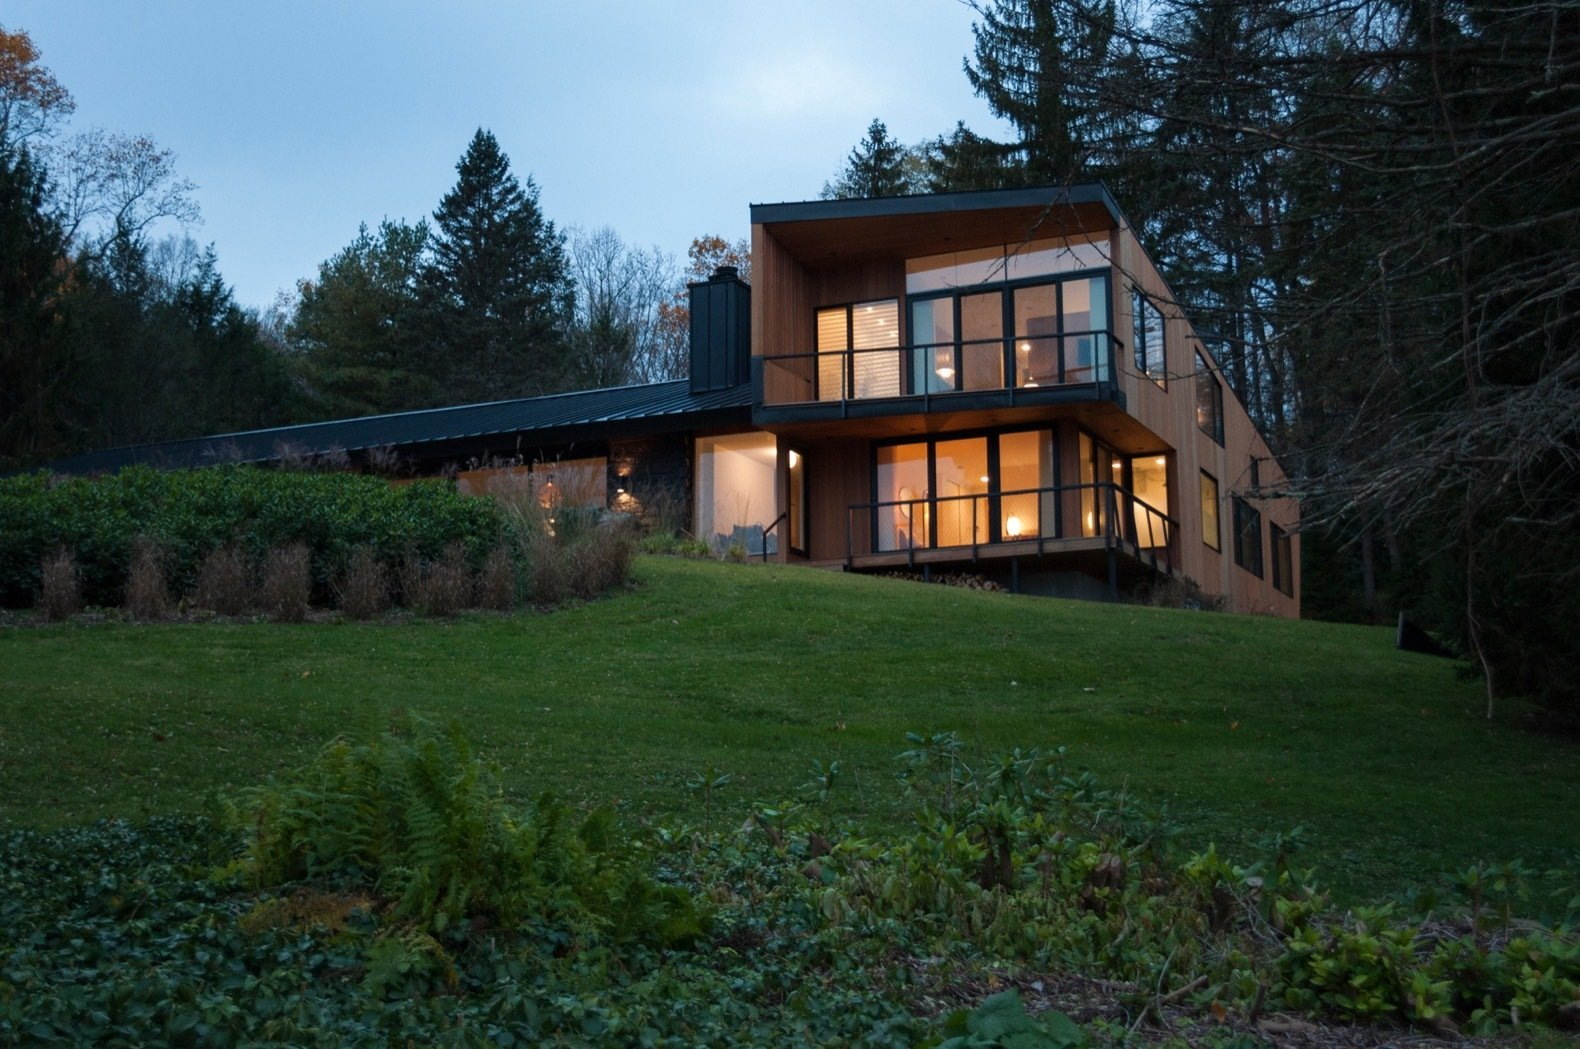 Candlewood Lake House exterior